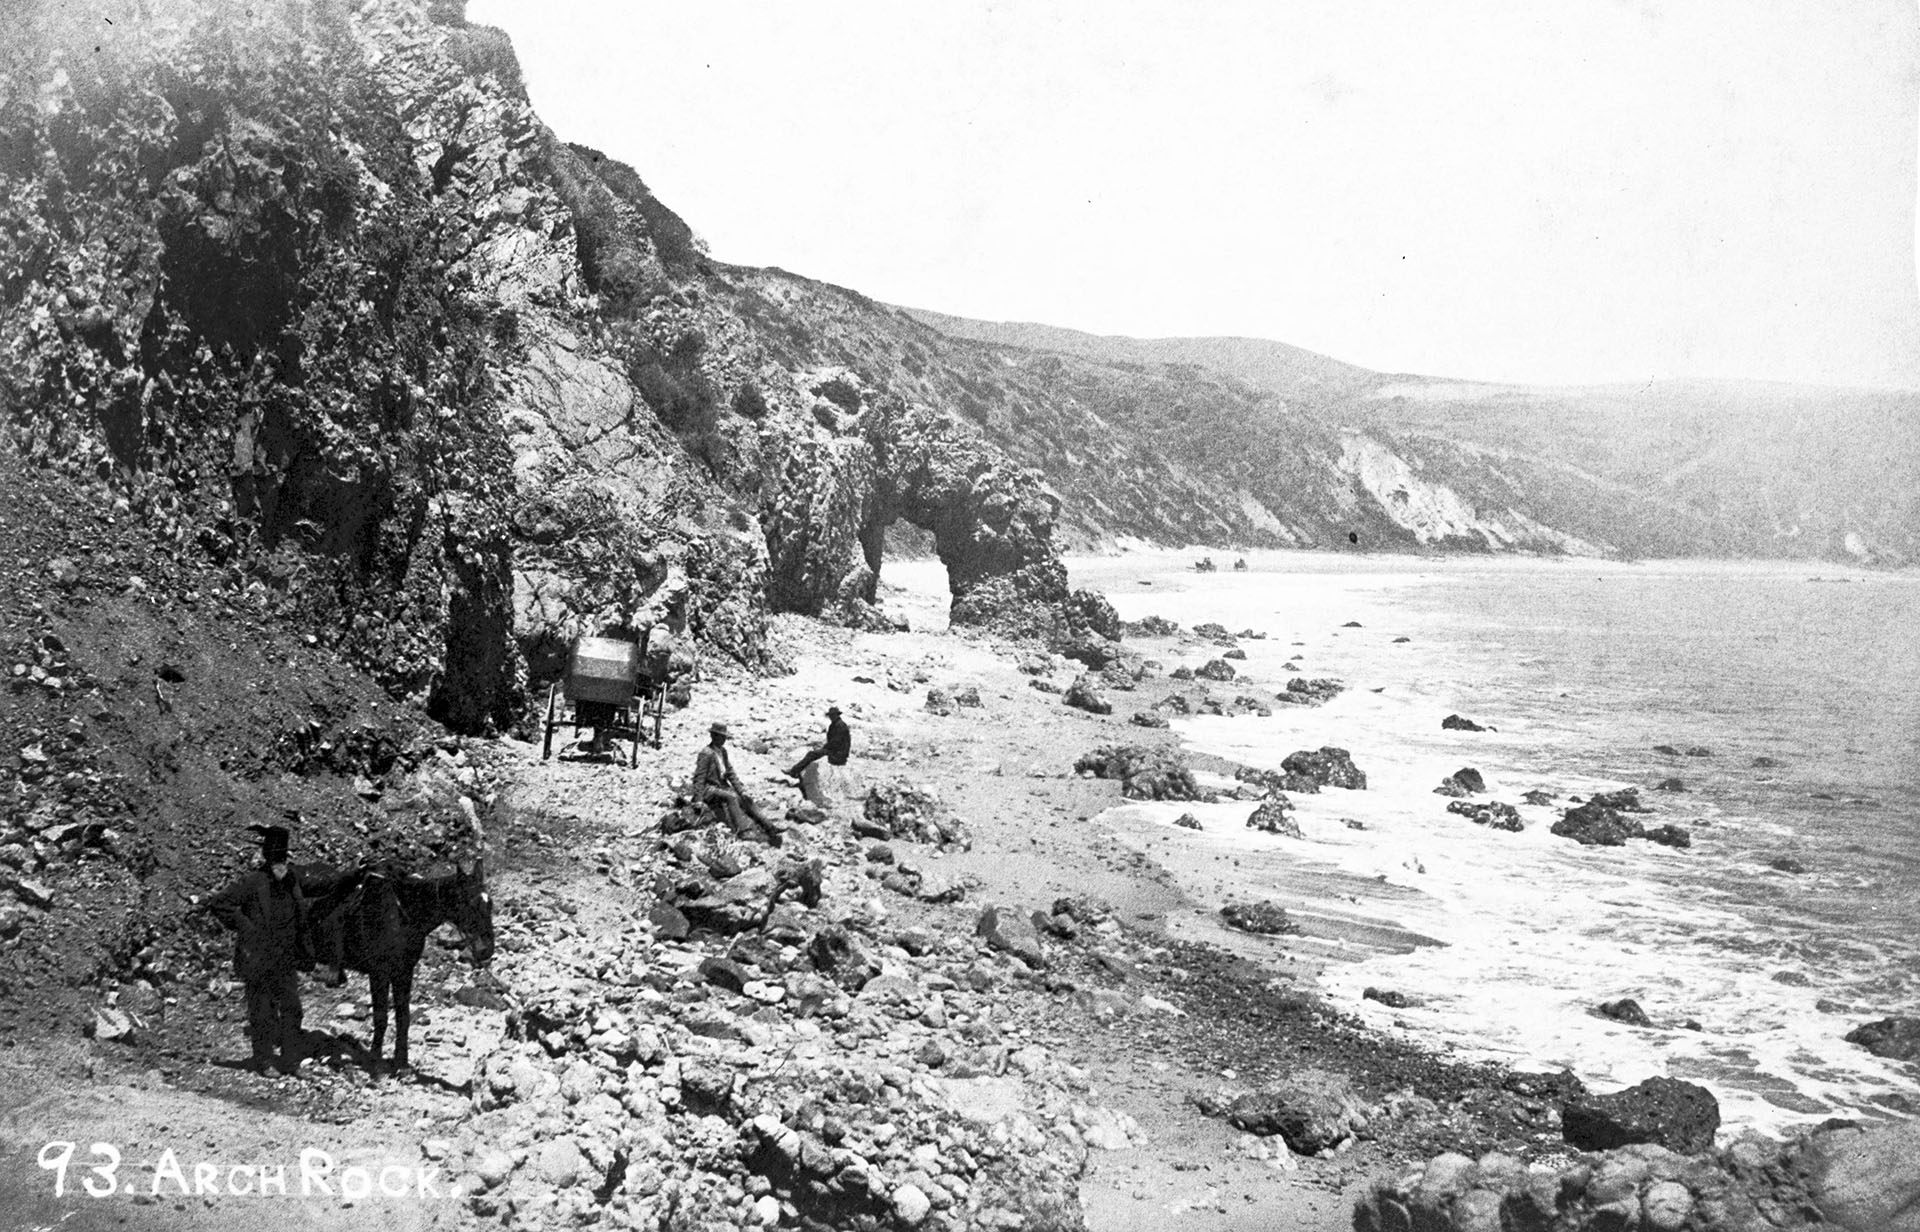 A view of Arch Rock in Santa Monica, showing a group of men posing along the rocks nearby, ca.1880